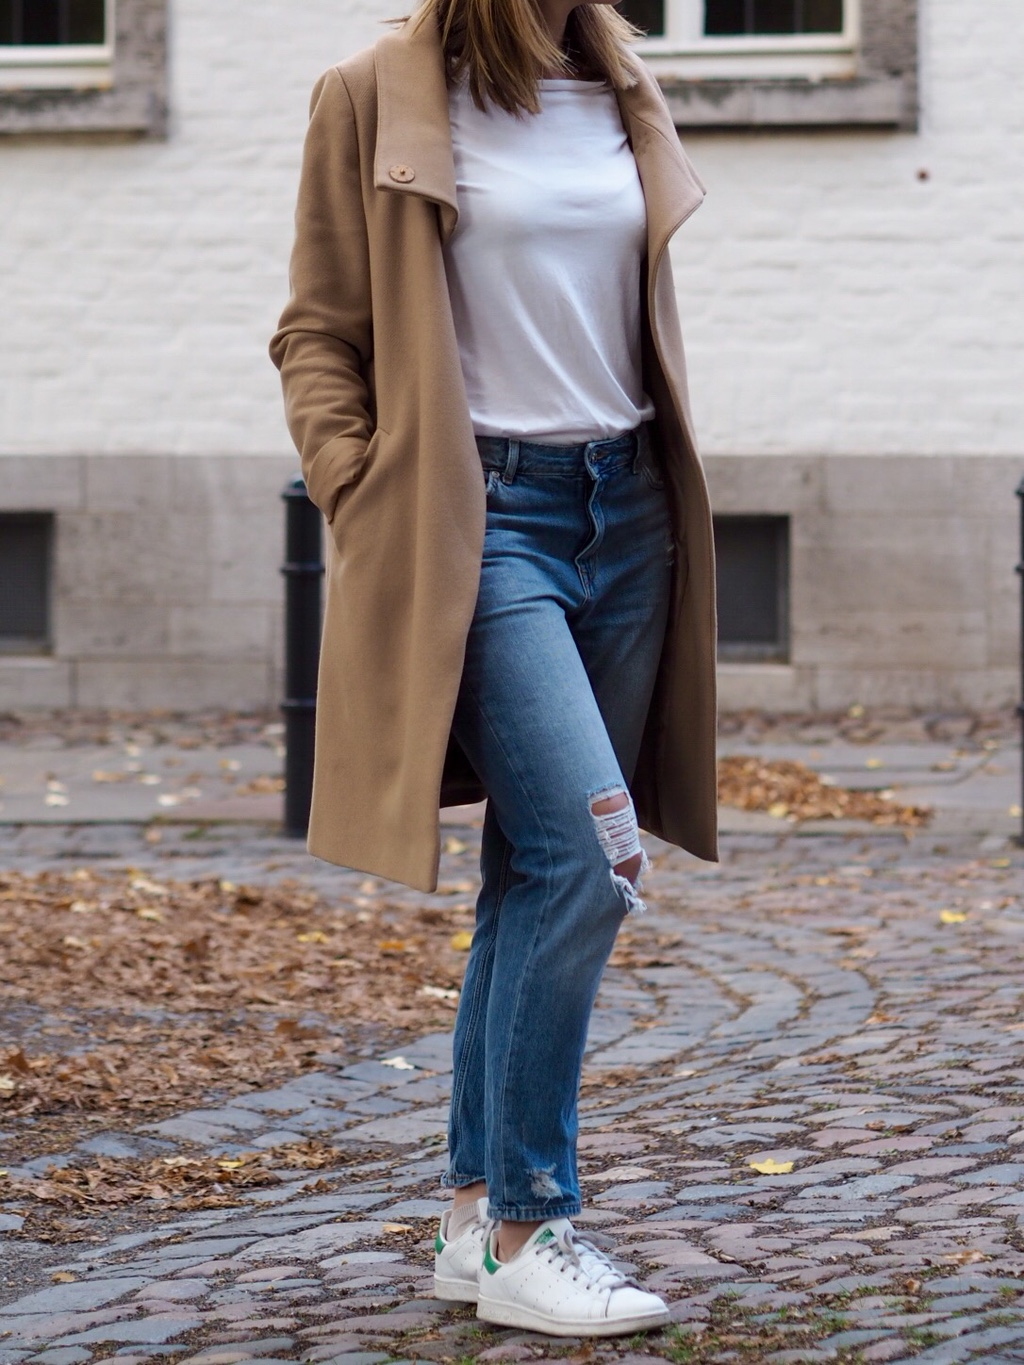 Beider Mantel Jeans T-Shirt Outfit